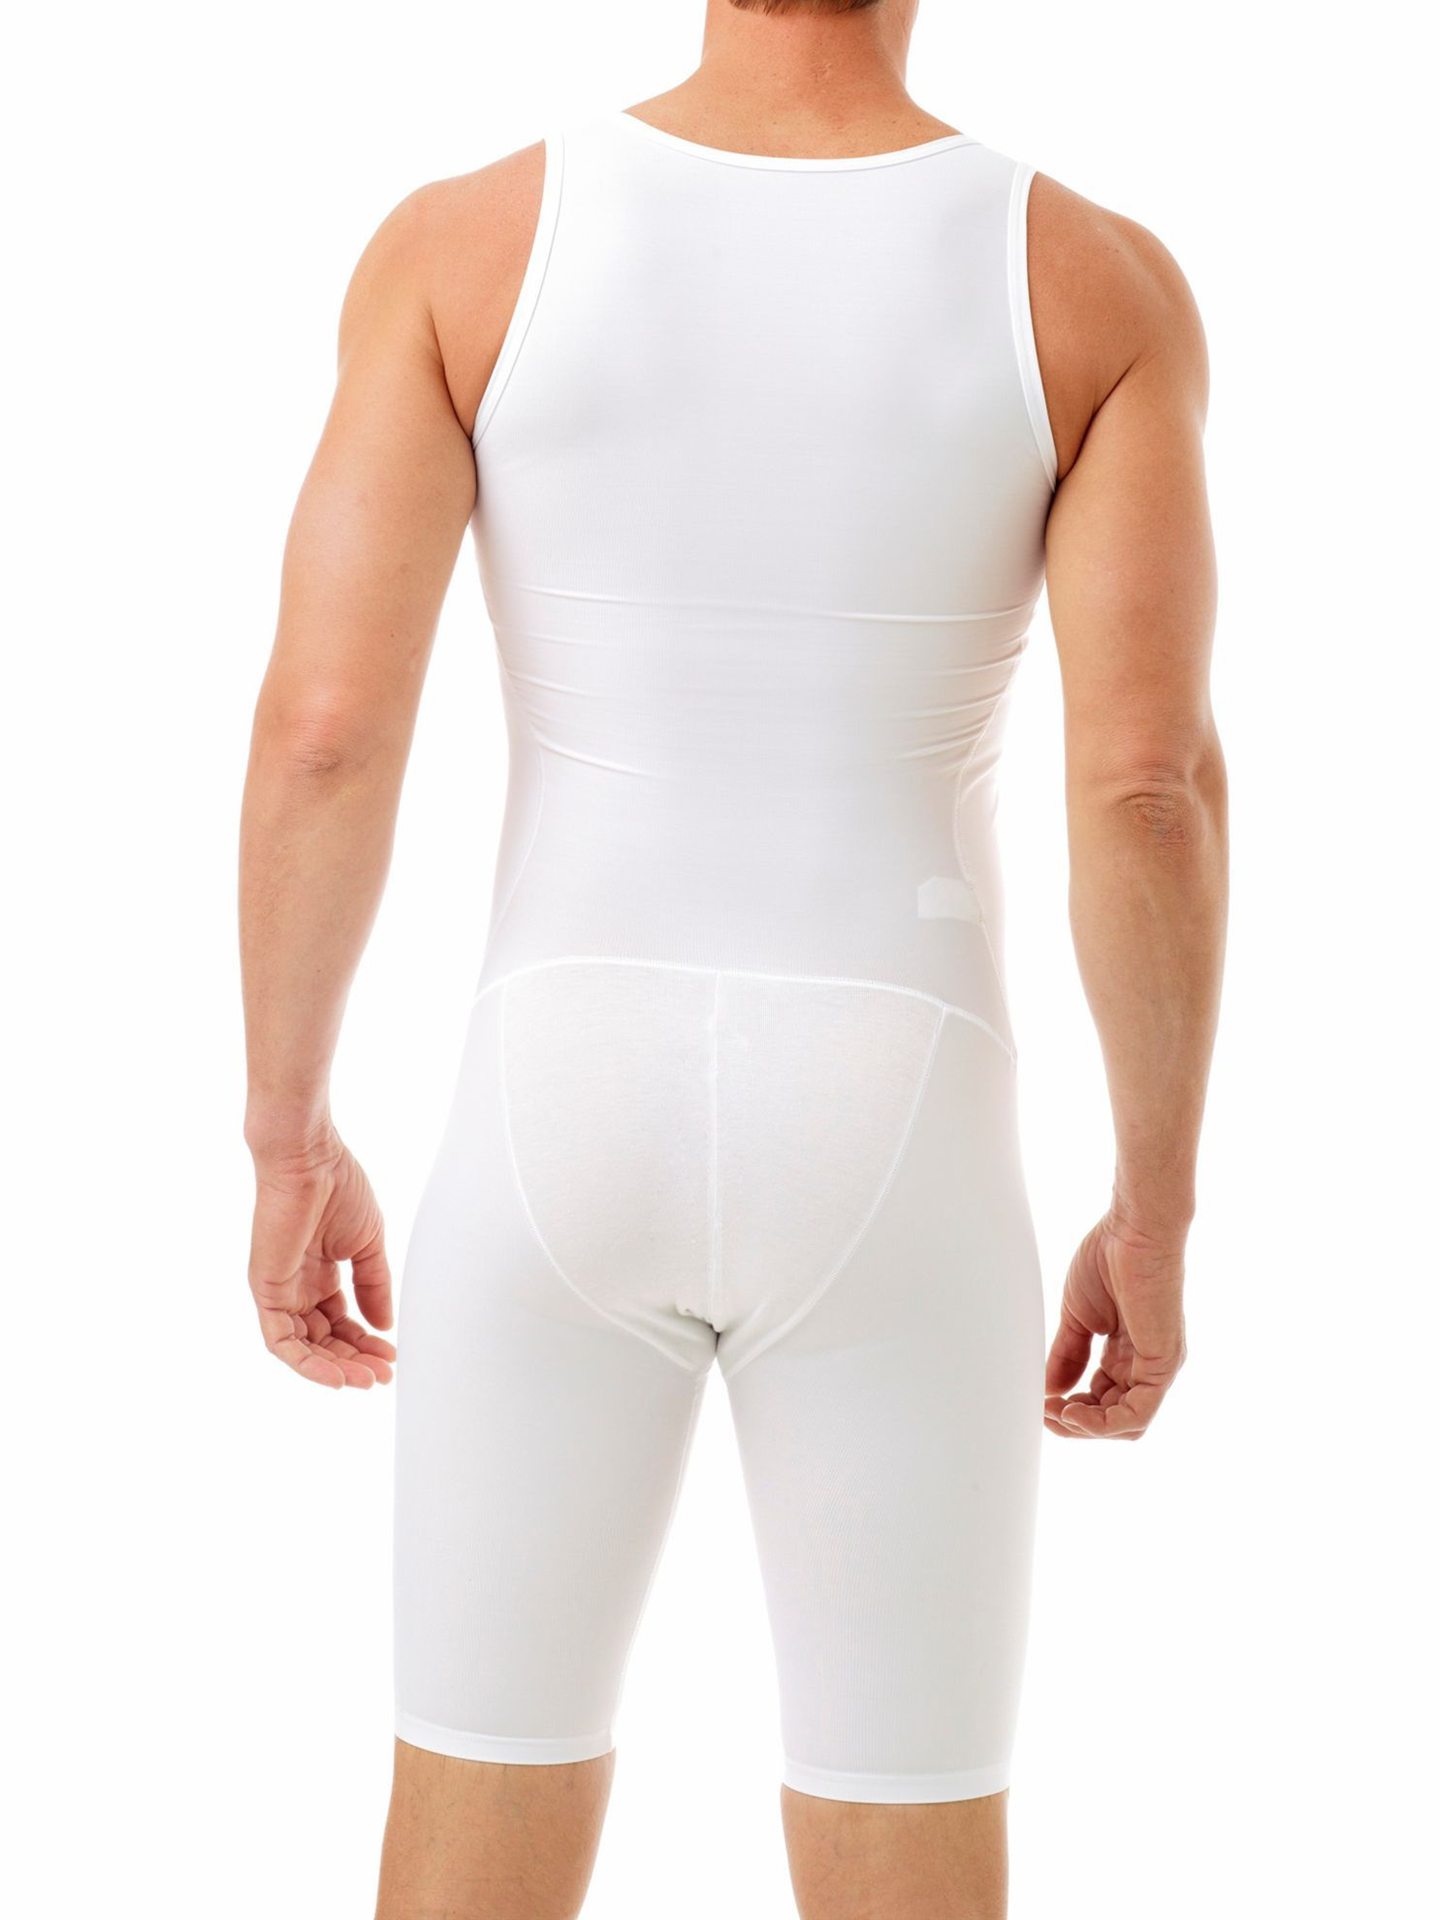 Picture of Mens Compression Bodysuit Shaper - Girdle for Gynecomastia Belly Fat and Thighs - No Rear Zipper